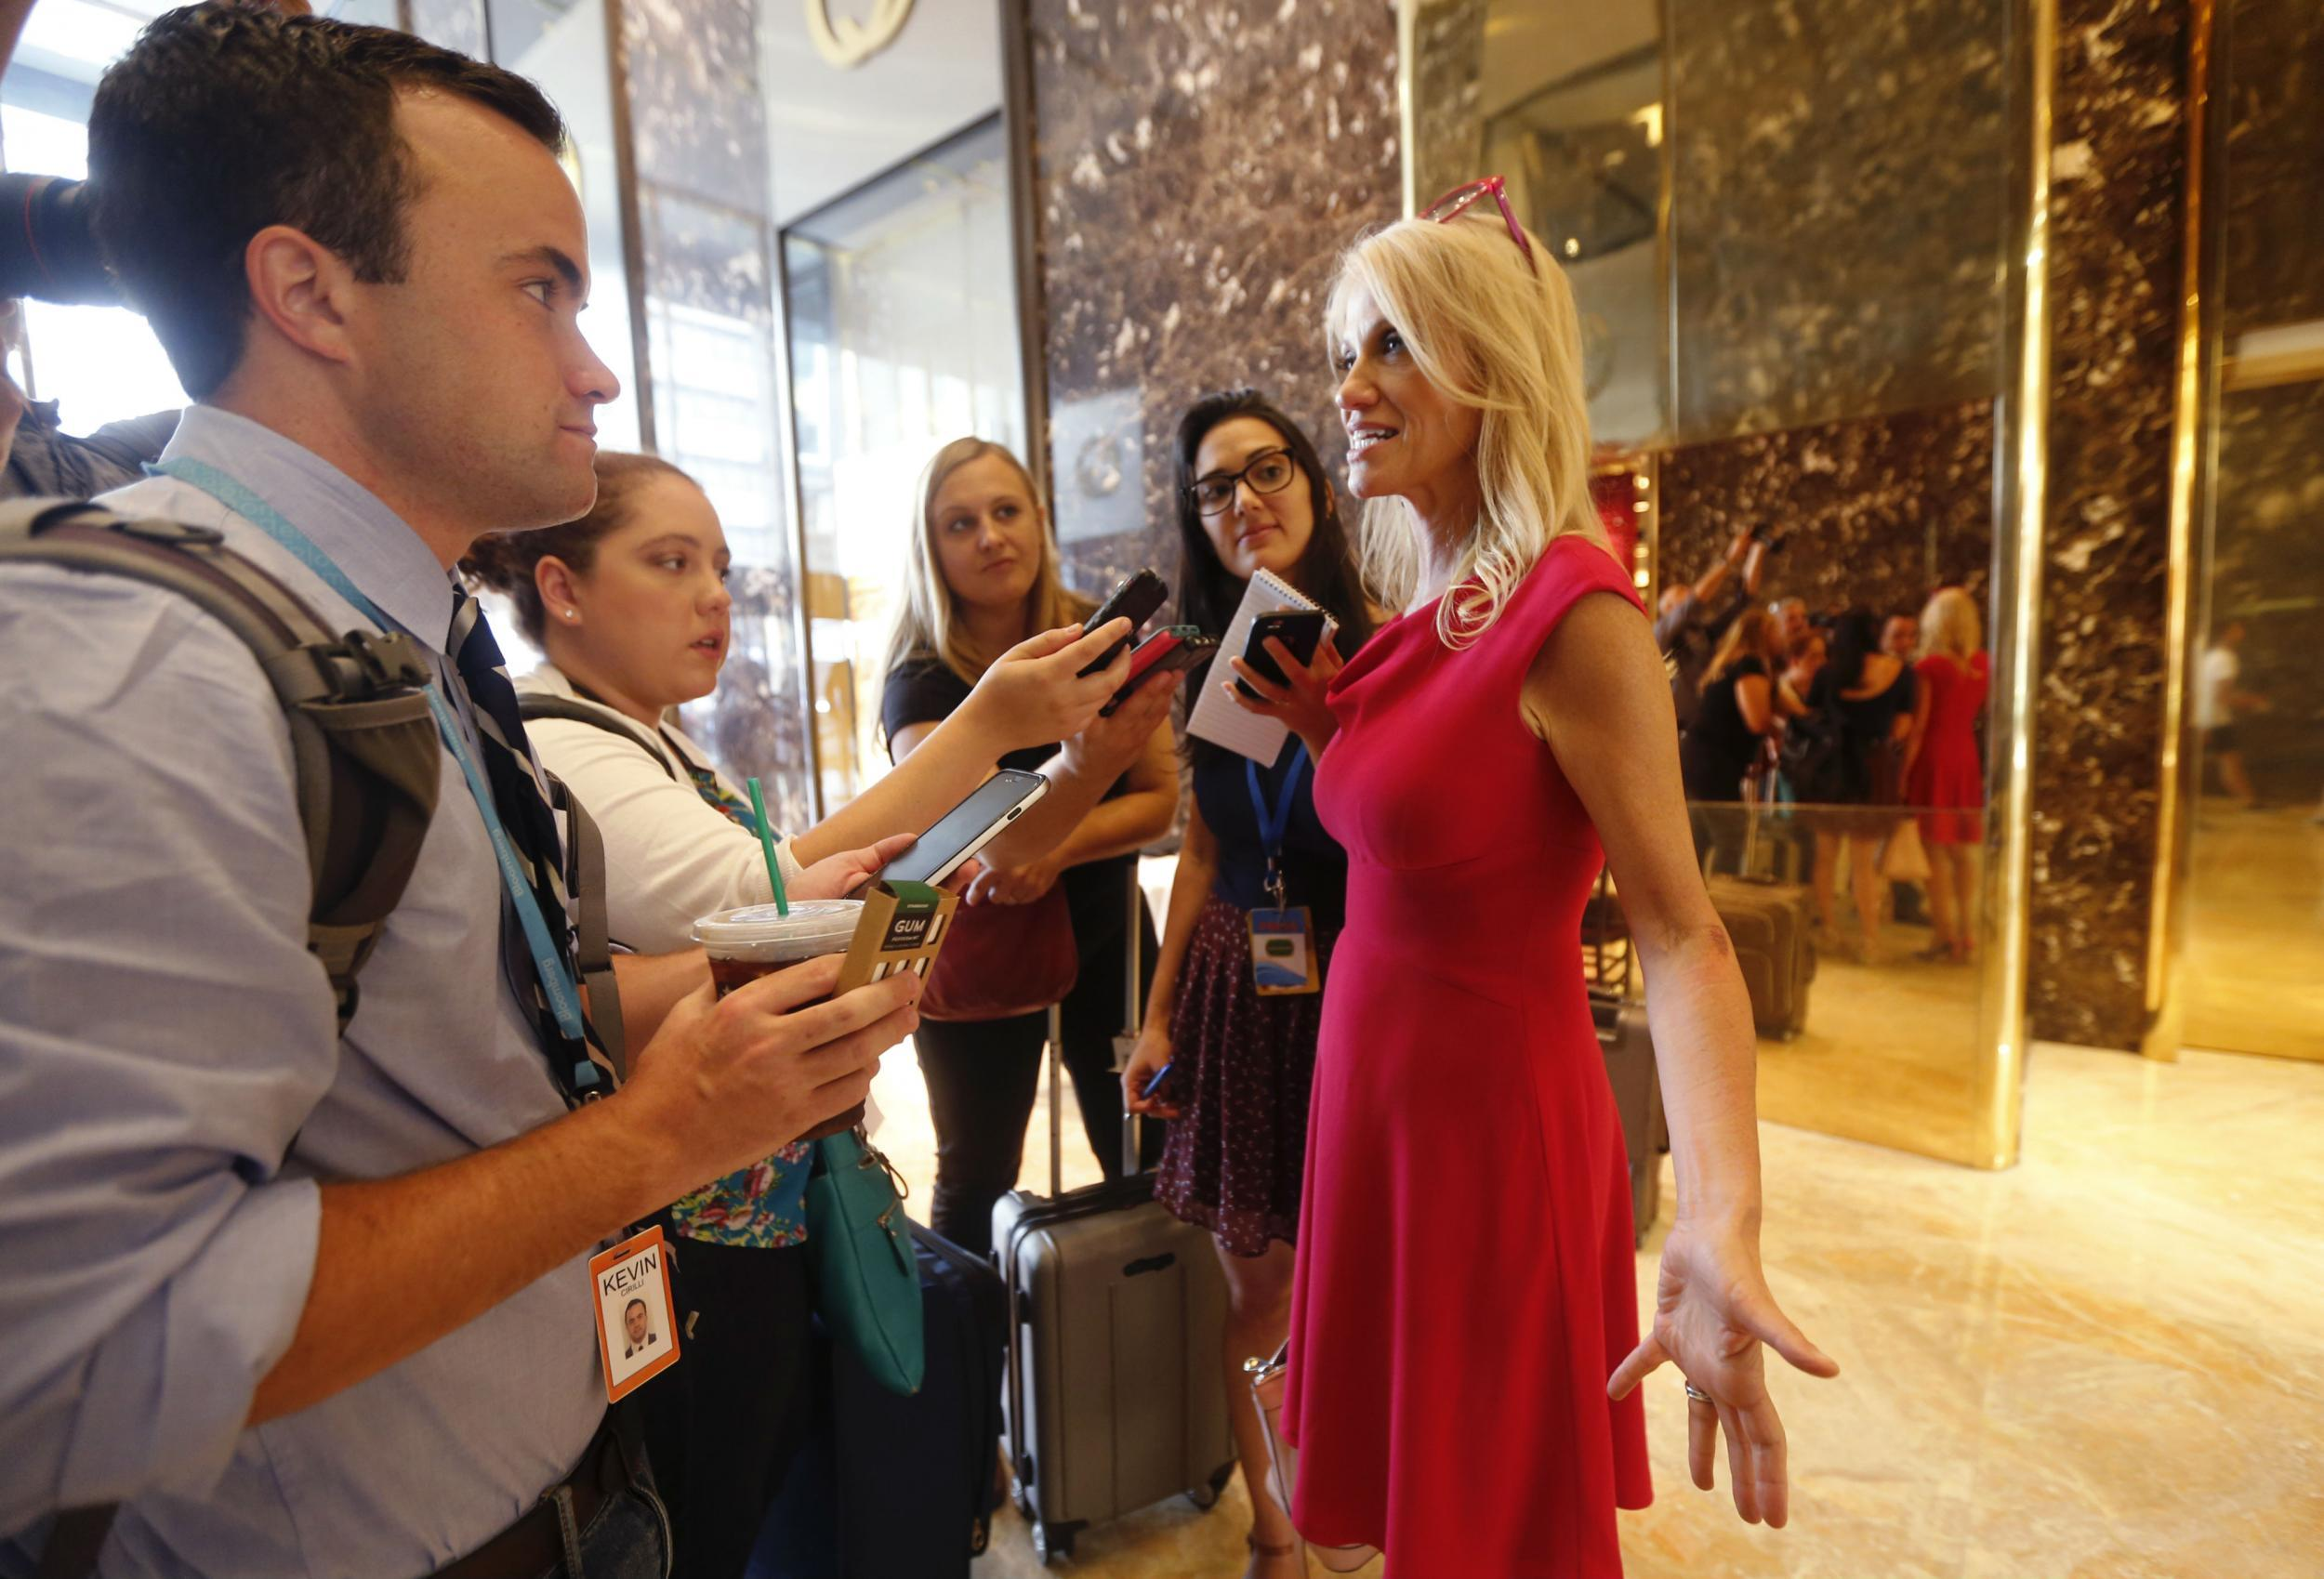 Donald Trump's campaign manager Kellyanne Conway said 'rape would not ...